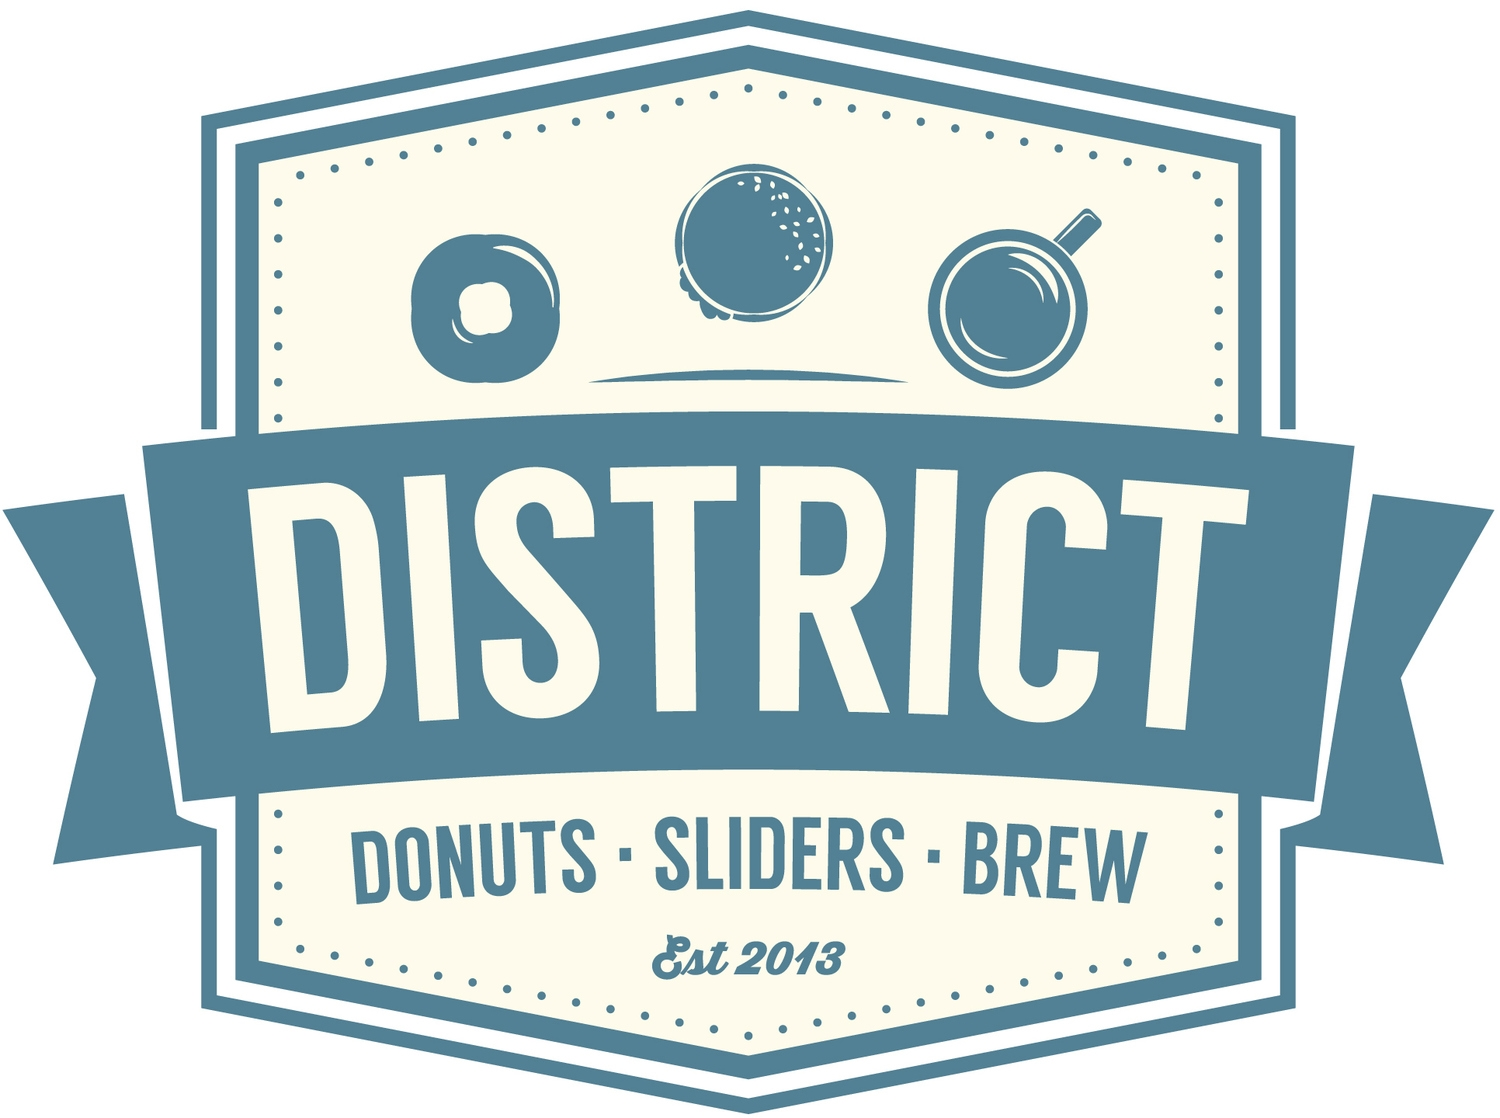 District: Donuts.Sliders.Brew